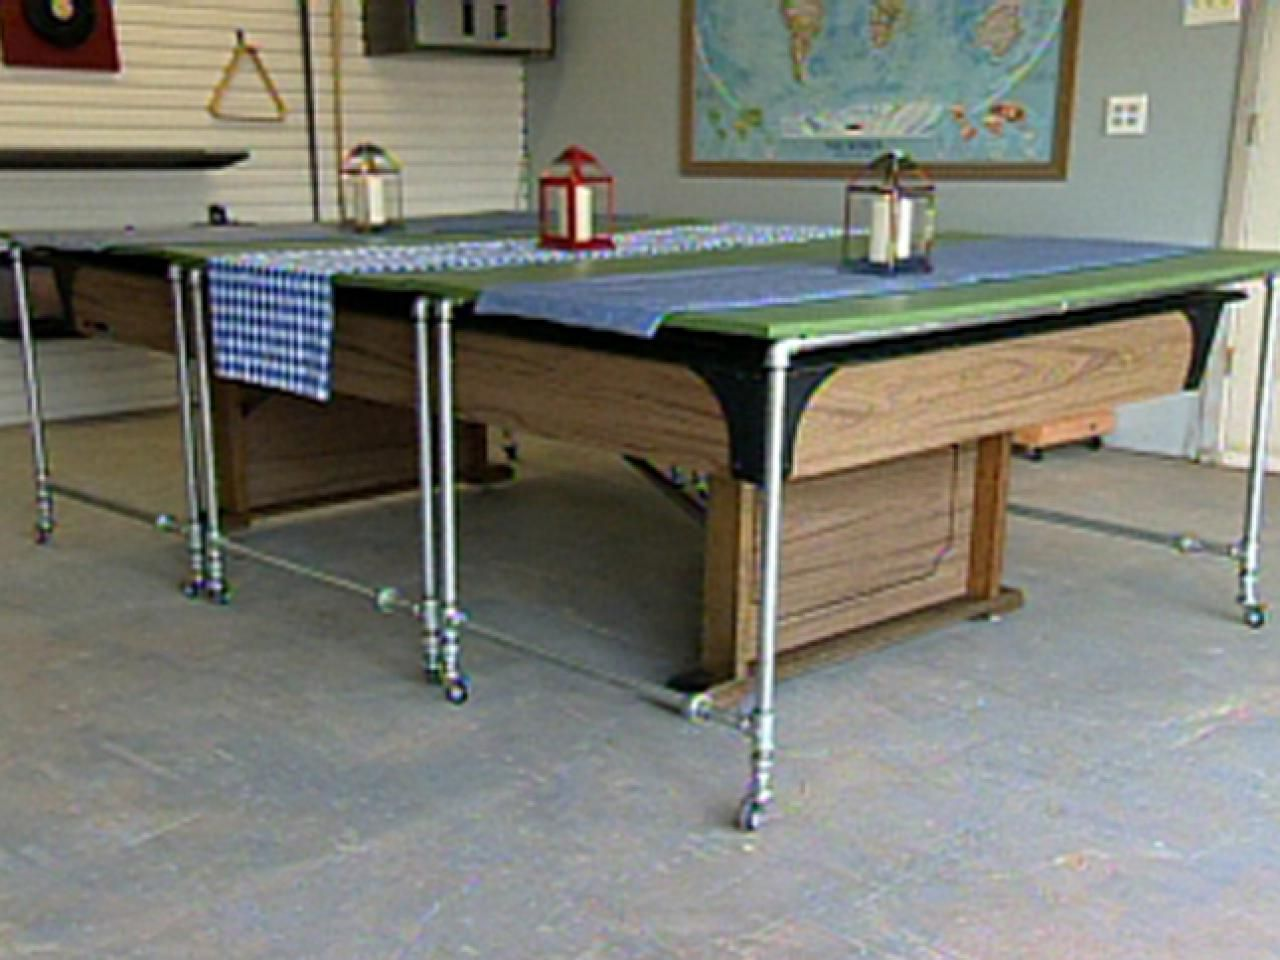 How To Build Rolling Pool Table Covers Pool Table Covers Build A Coffee Table Pool Tables For Sale